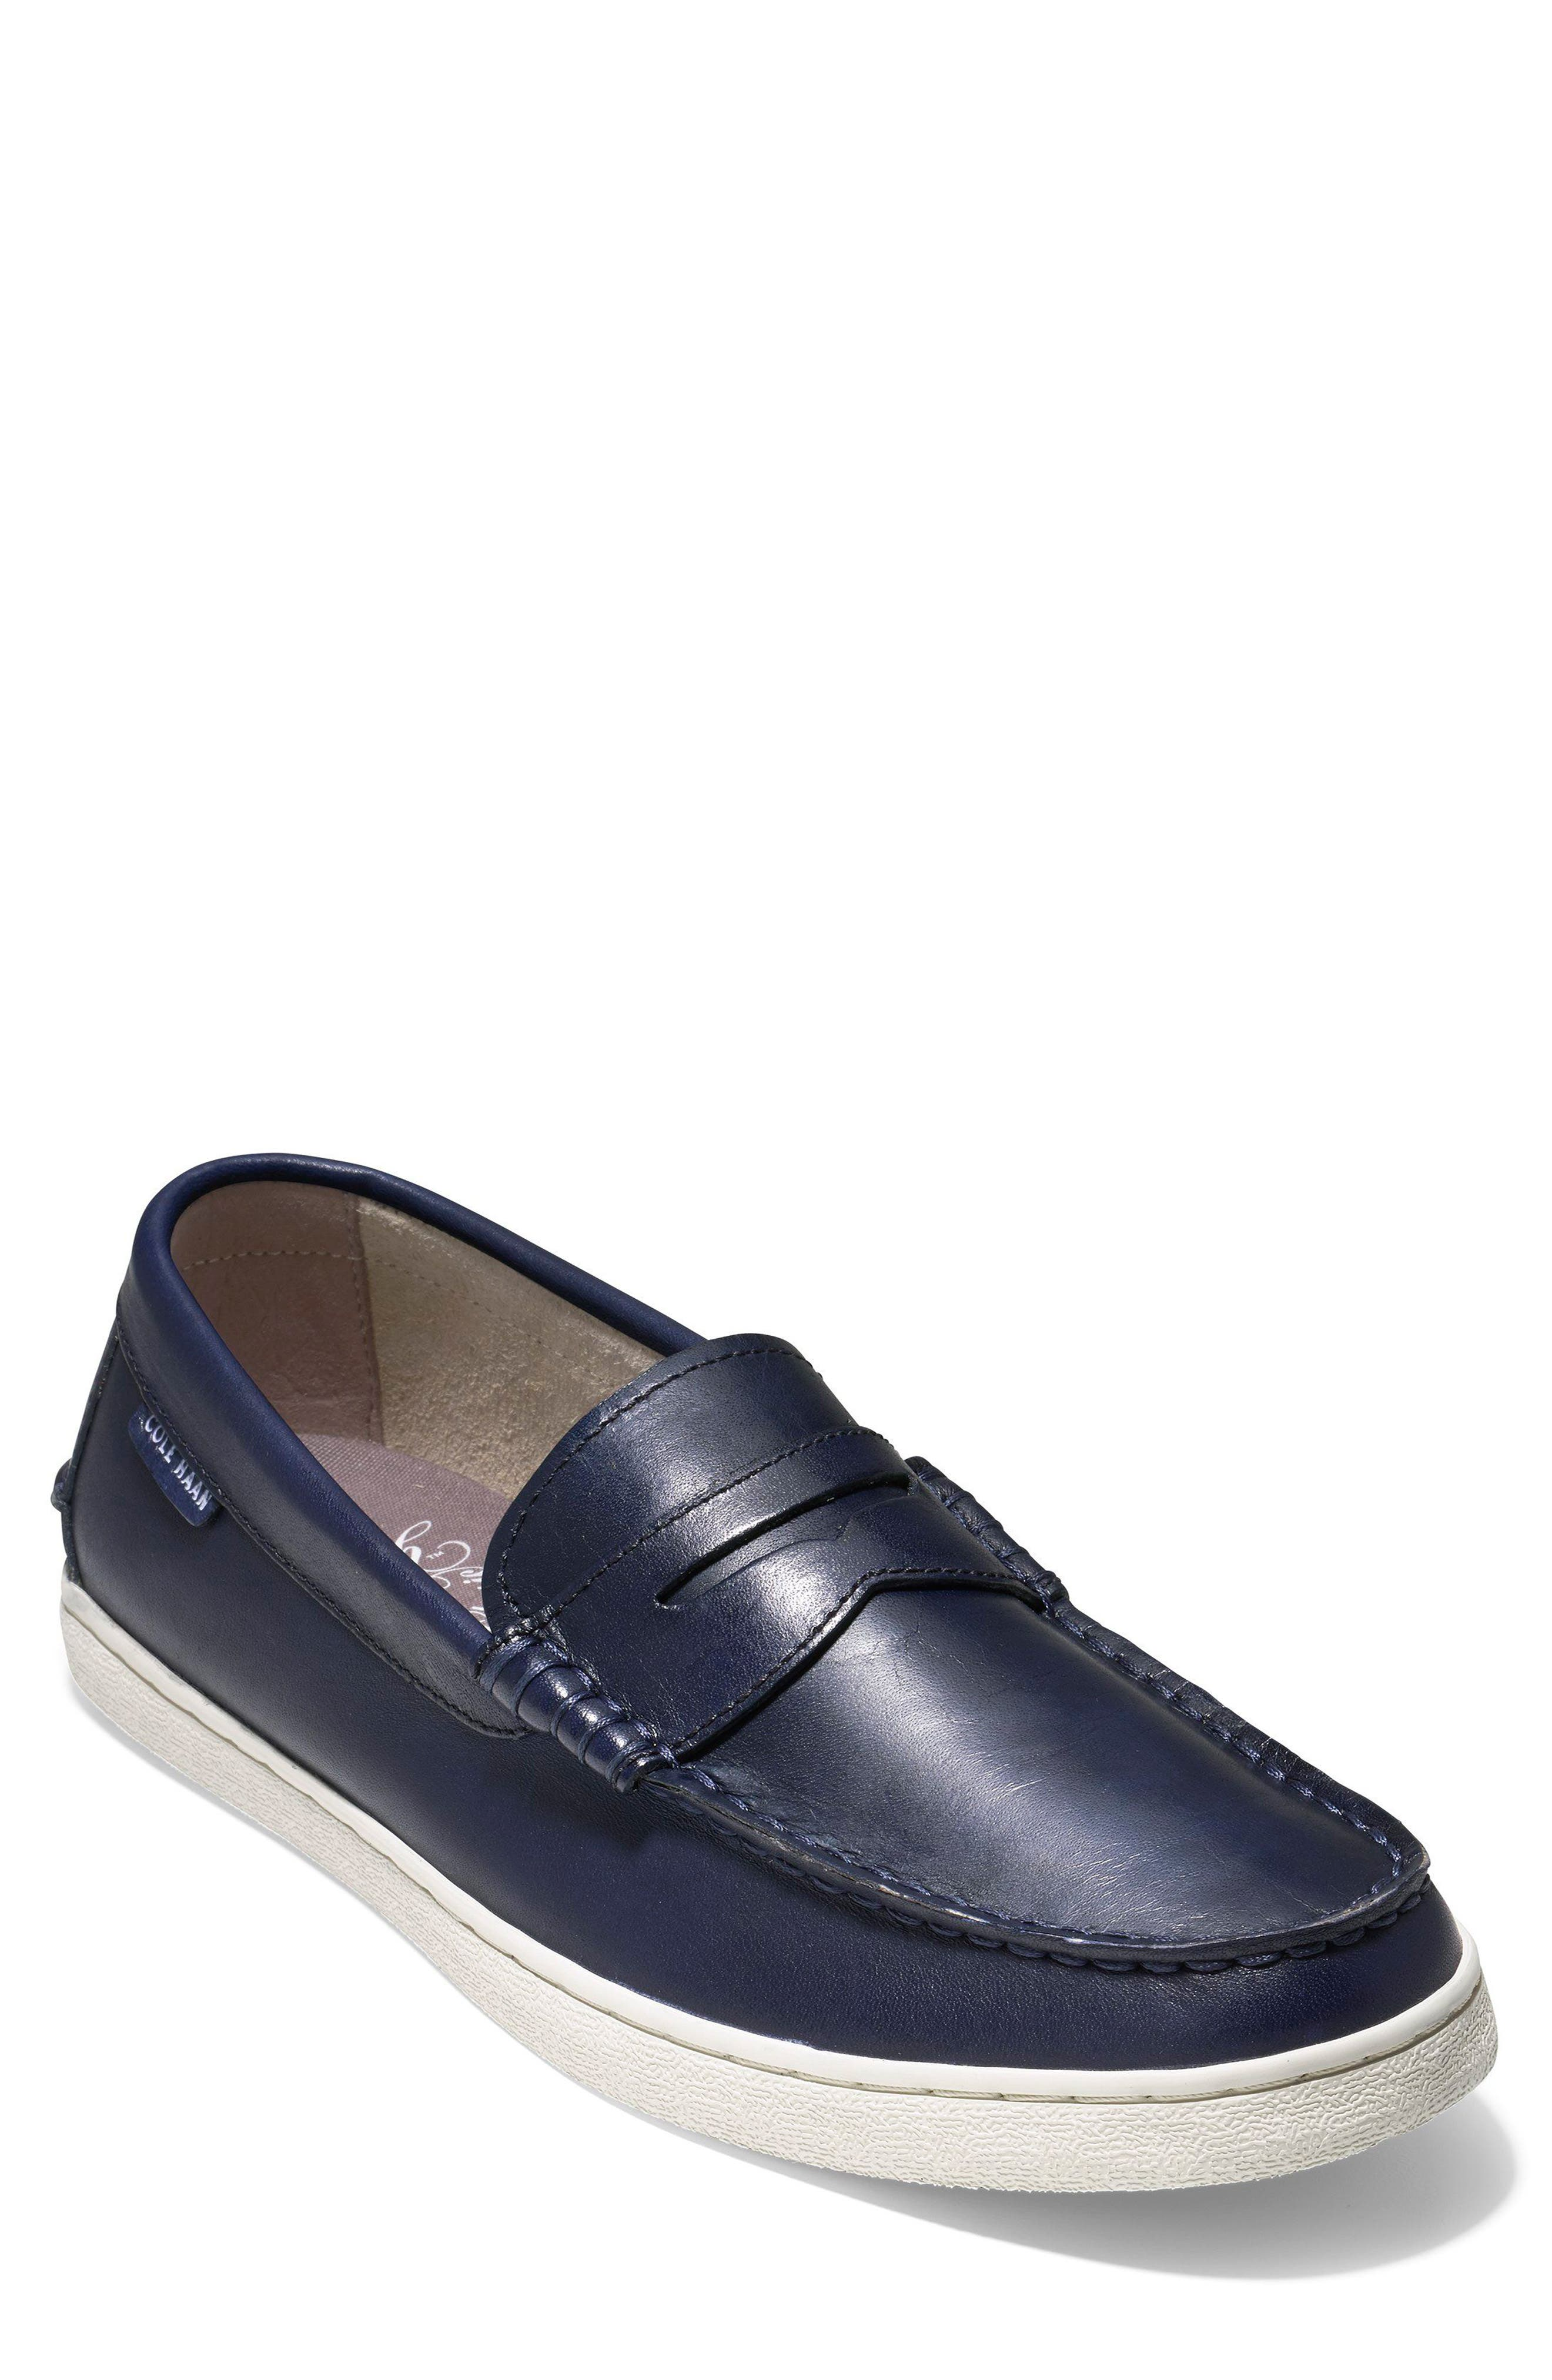 COLE HAAN, Pinch Penny Loafer, Main thumbnail 1, color, BLAZER BLUE LEATHER